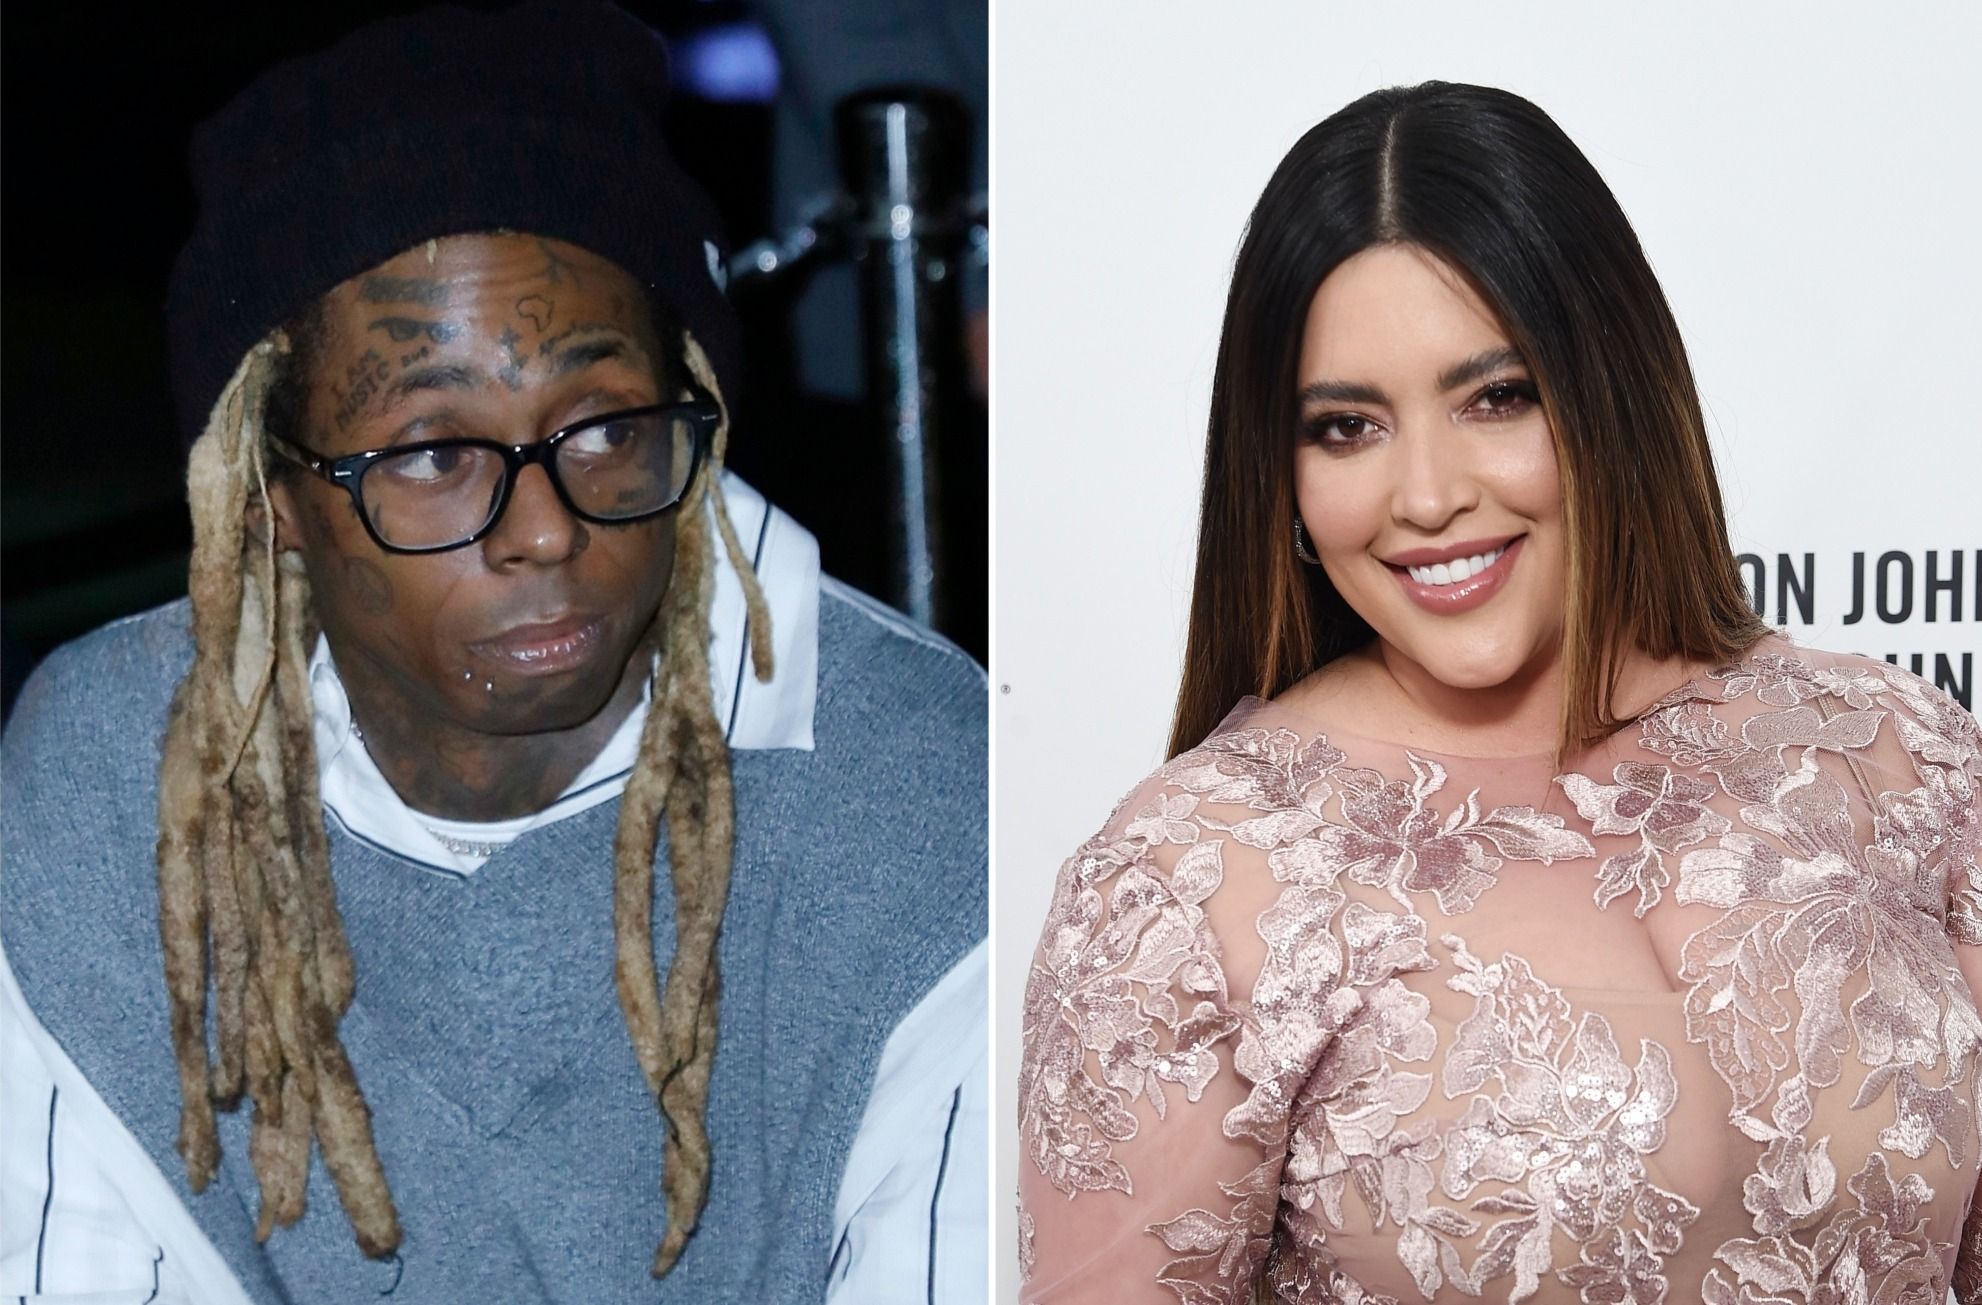 """lil-wayne-and-denise-bidot-unfollow-one-another-on-social-media-sparking-breakup-speculations"""